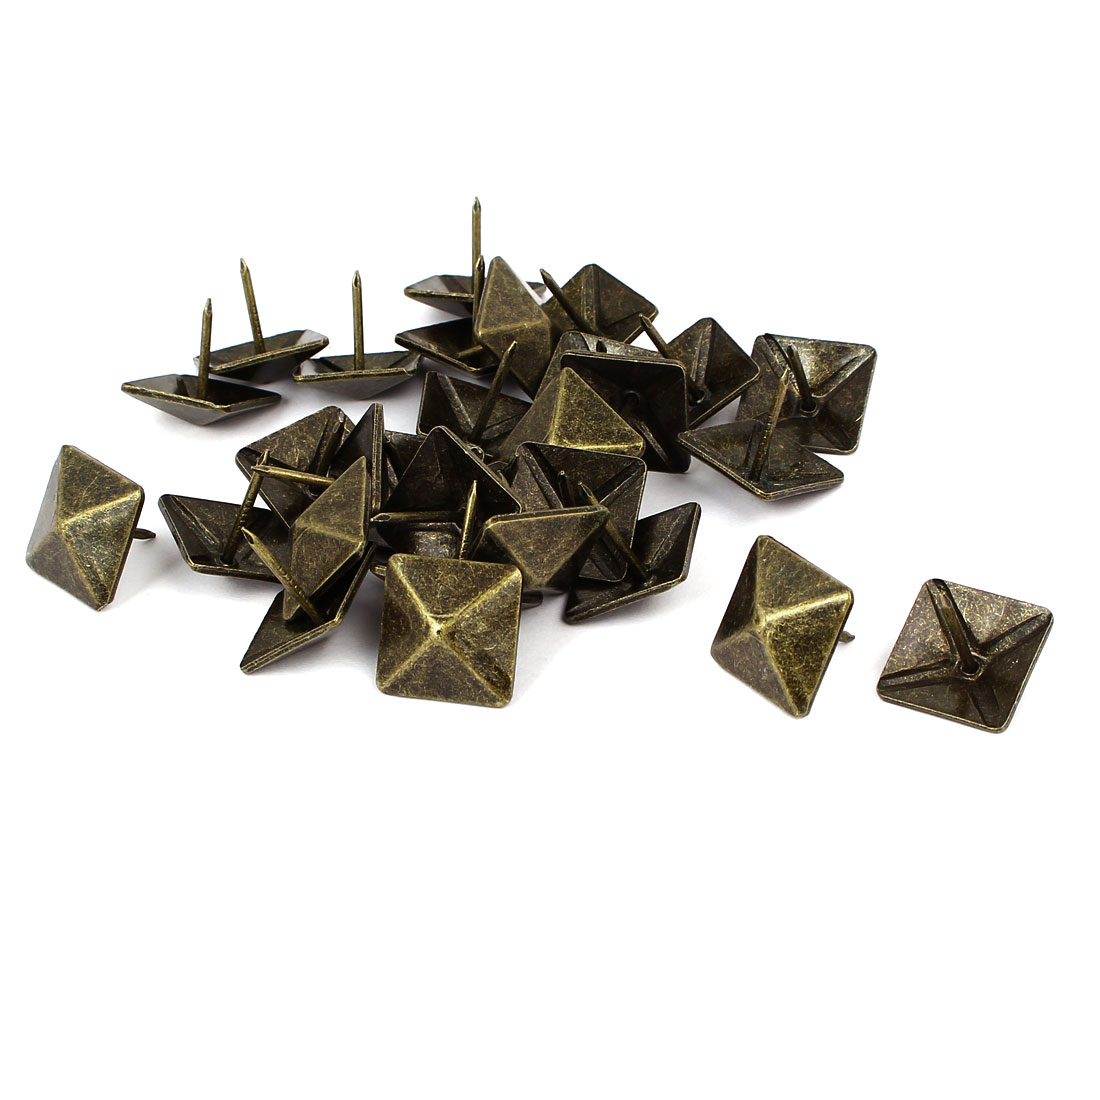 Household Metal Square Head Upholstery Tack Nail Bronze Tone 19mmx19mm 30pcs